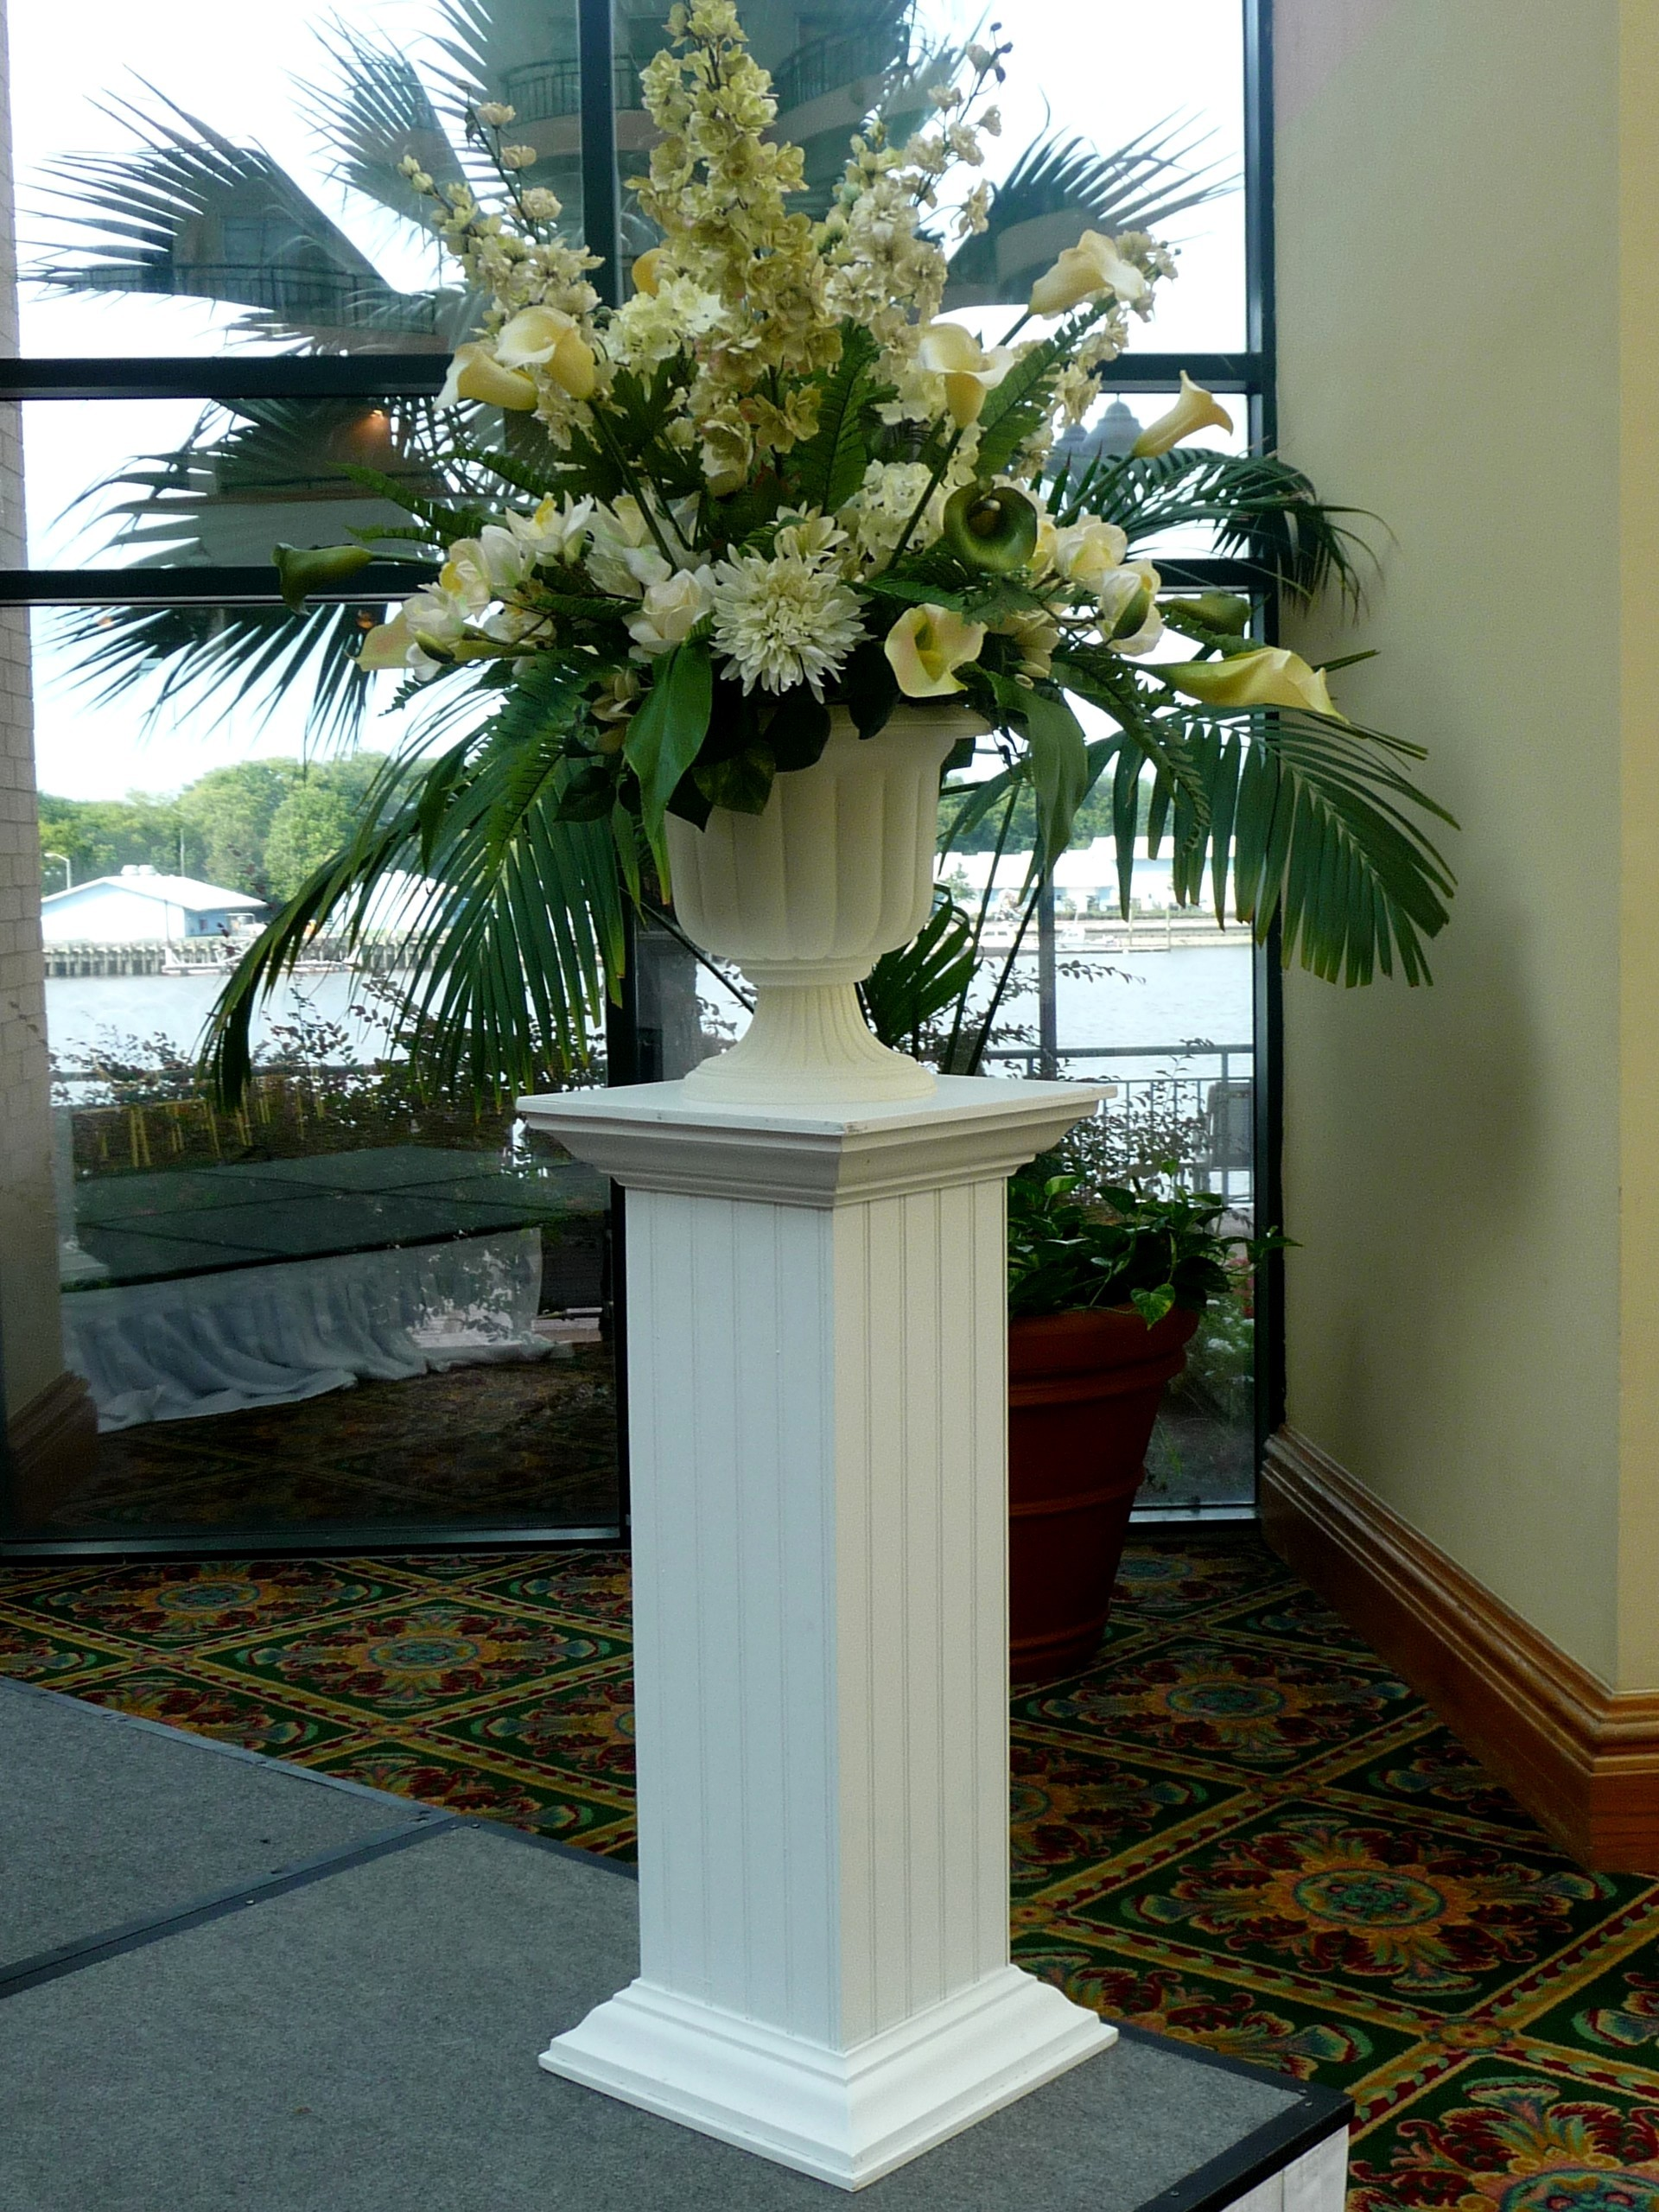 Ceremony, Inspiration, Reception, Flowers & Decor, white, Ceremony Flowers, Flowers, Board, Savannah event decor